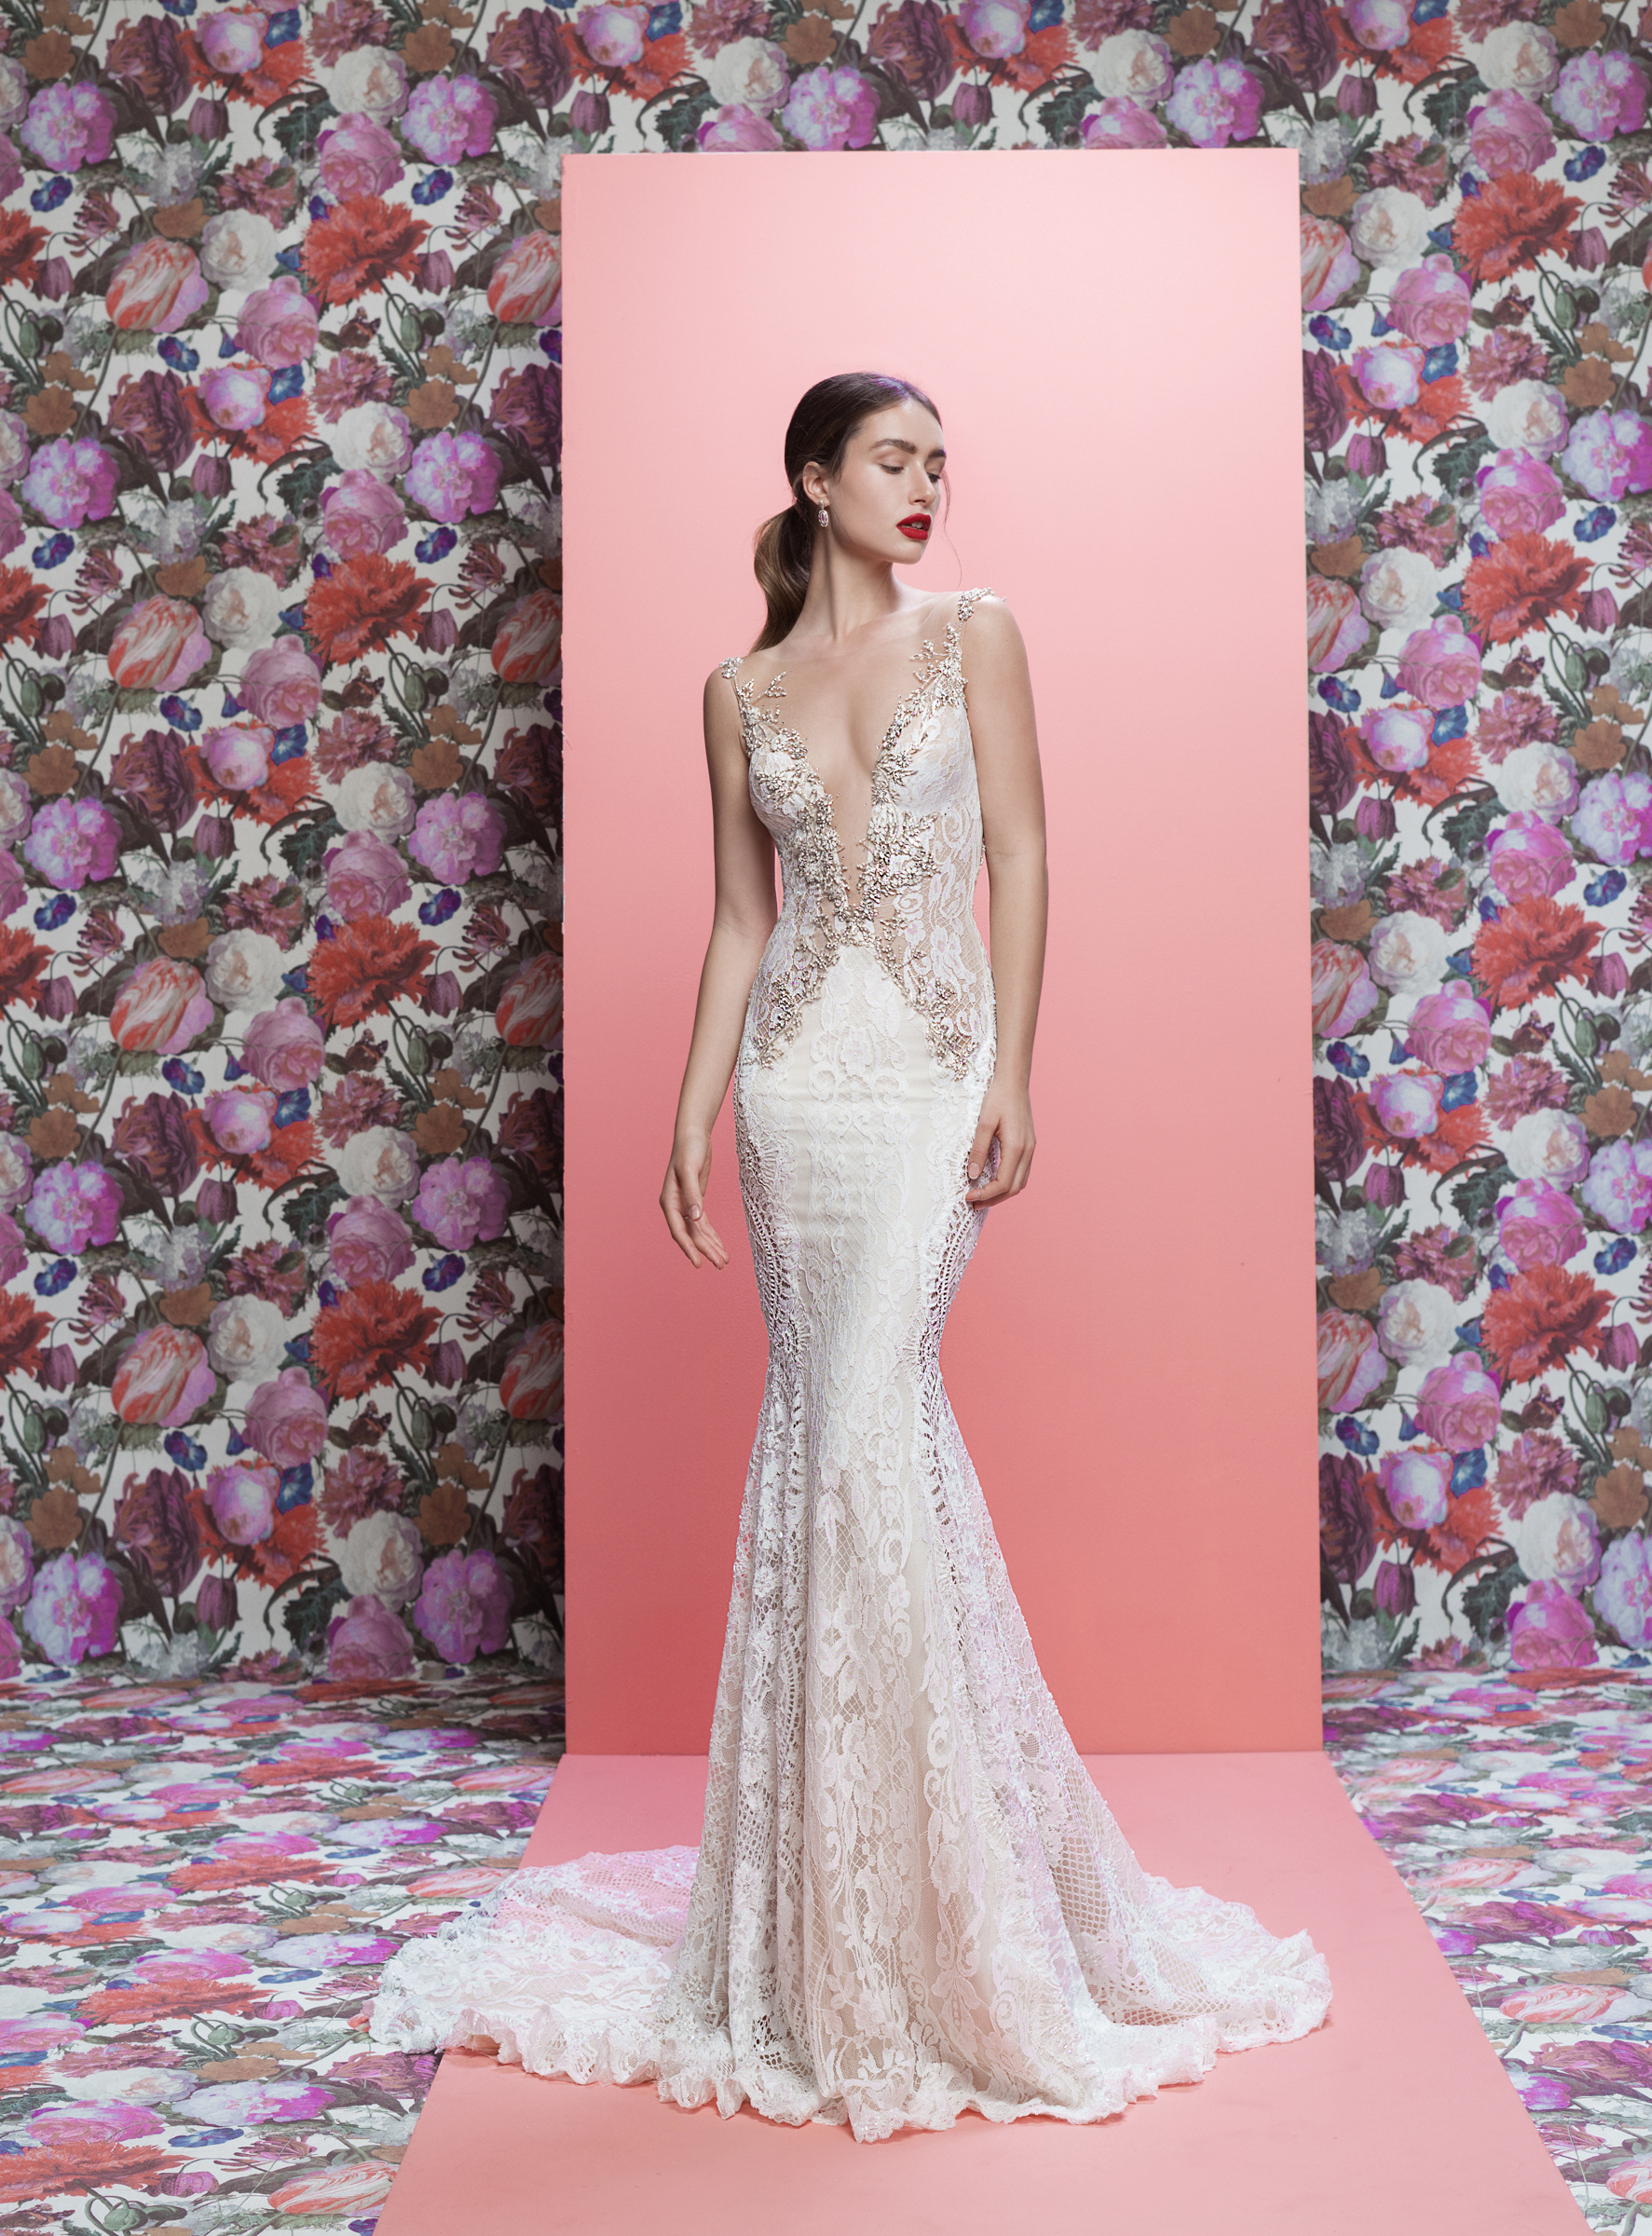 Galia Lahav wedding dress spring 2019 sparkly lace v-neck mermaid